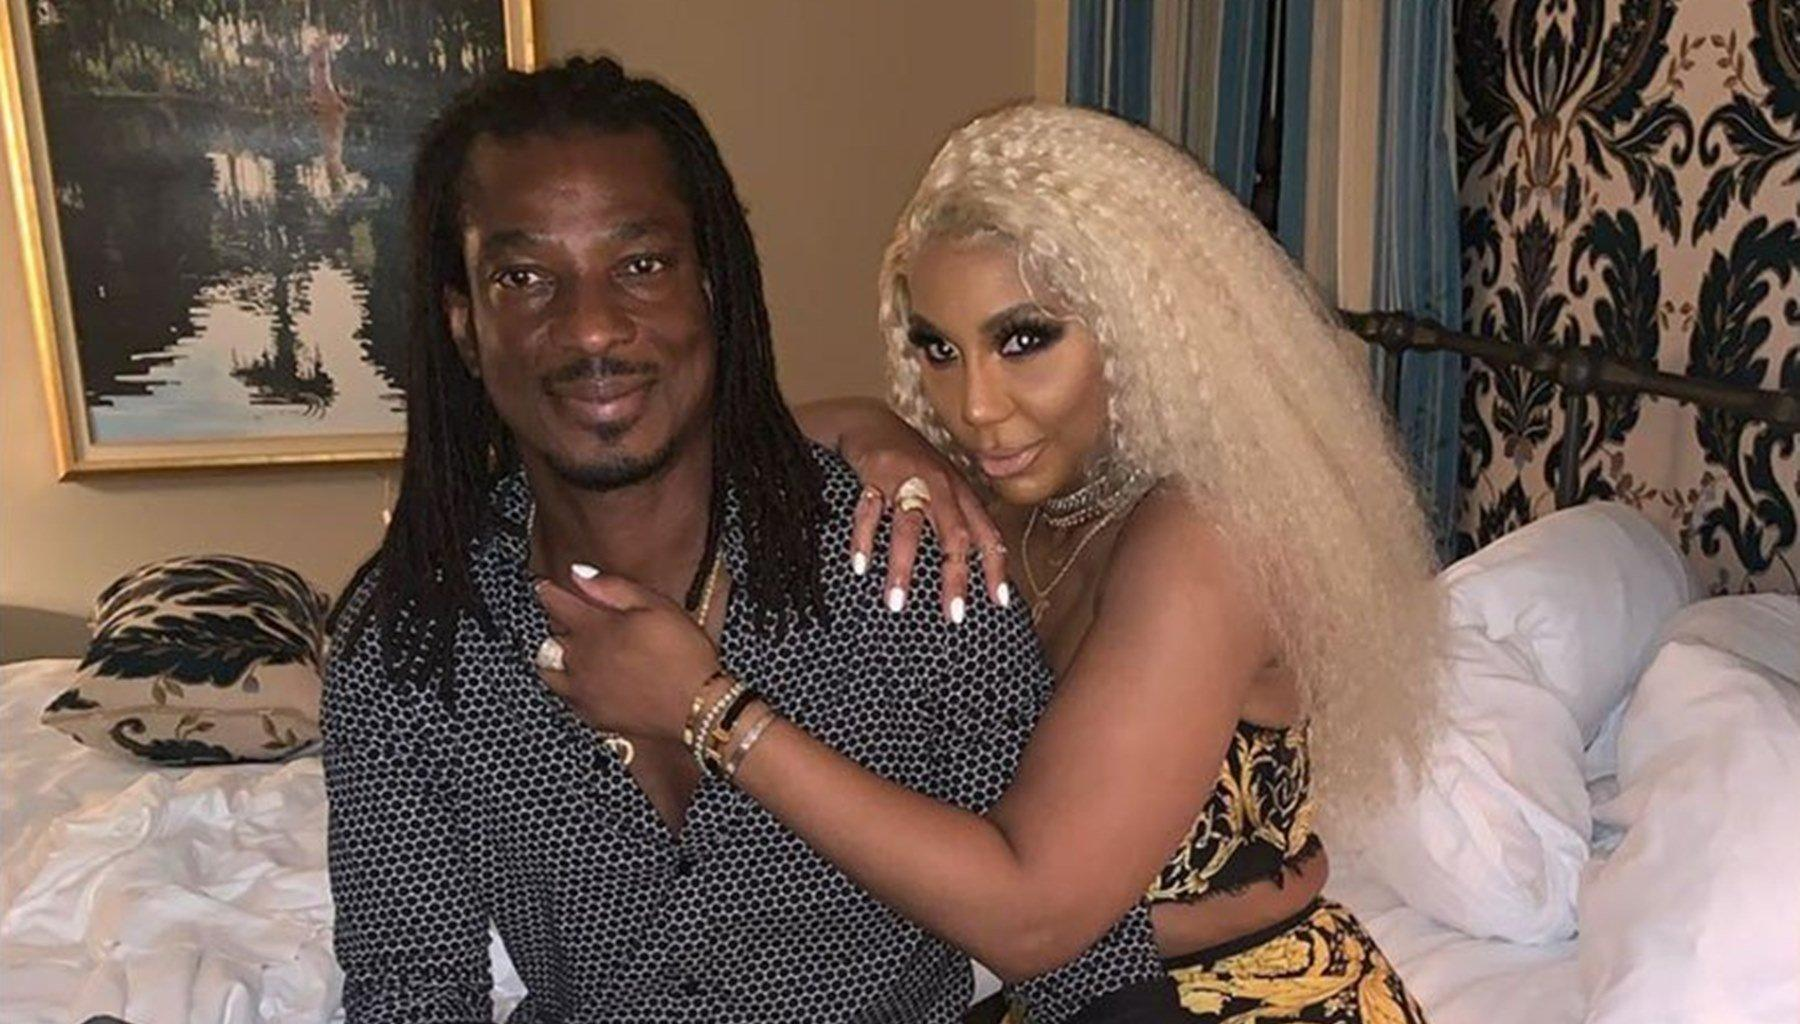 Tamar Braxton's BF, David Adefeso Tells Fans That If You Don't Play The Game, You Can't Win